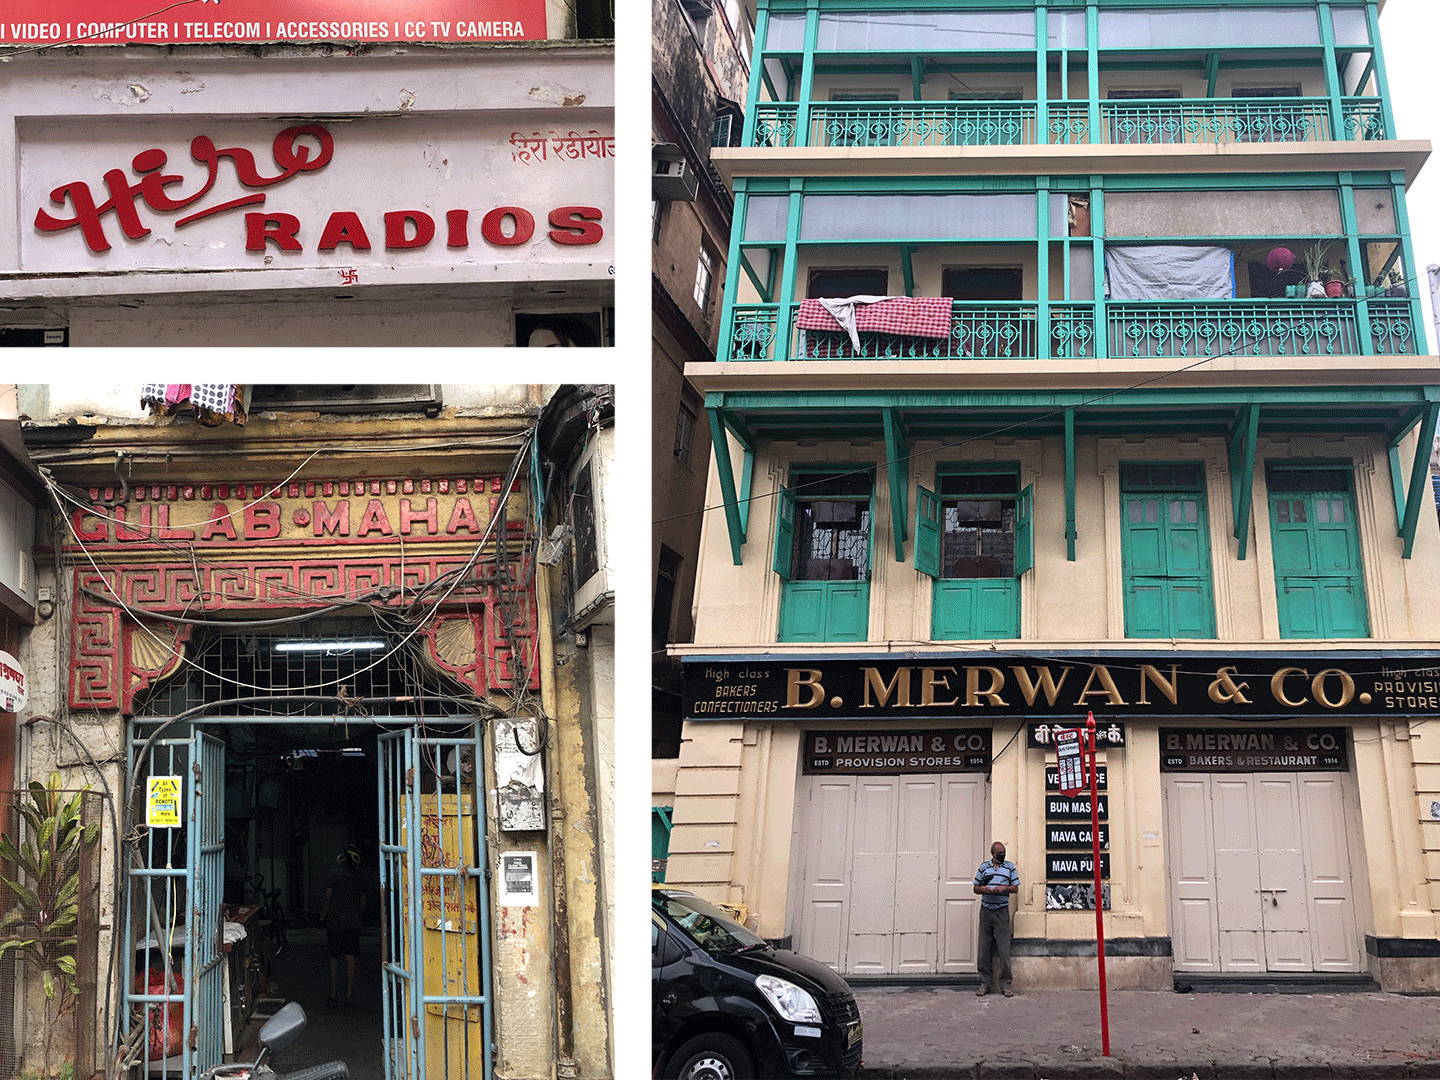 Signages on shops and buildings around Mumbai. Top Left is Hiro radios, below that is Gulab Mahal in red 3D letters on a building entrance and to the right is B. Merwans & Co. a Restaurant